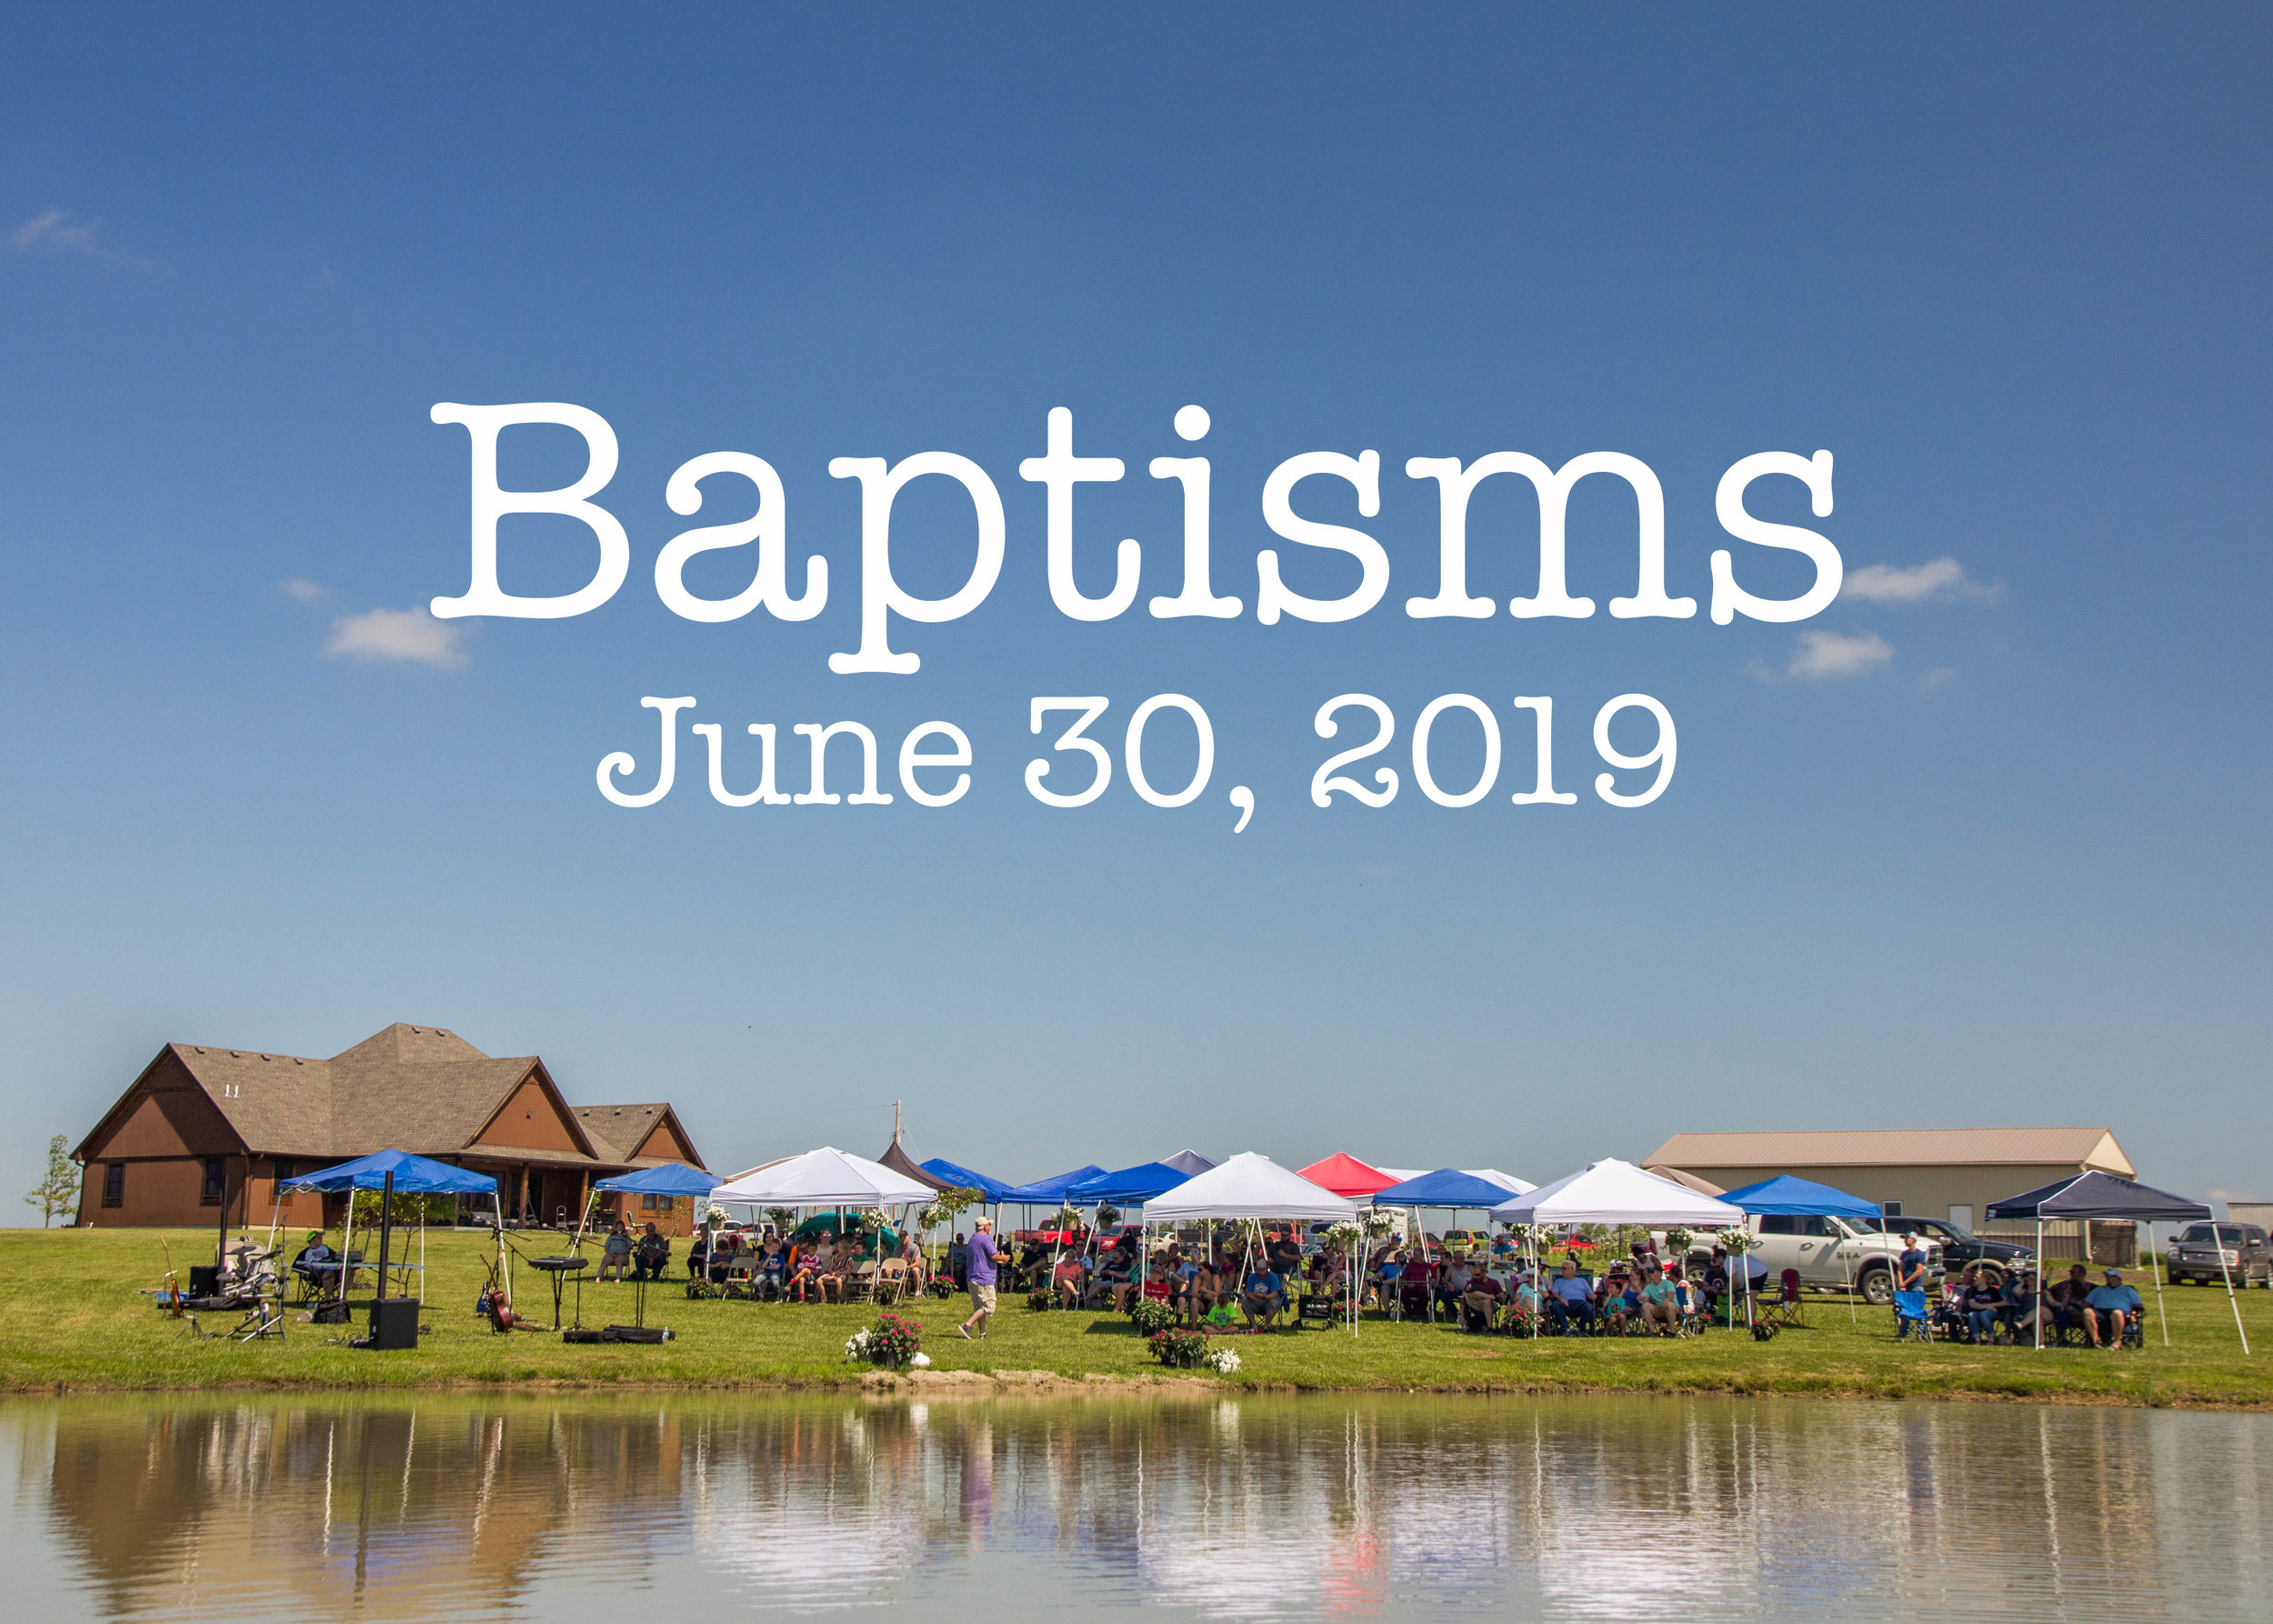 06-30-19 FPC Baptisms Cover.jpg